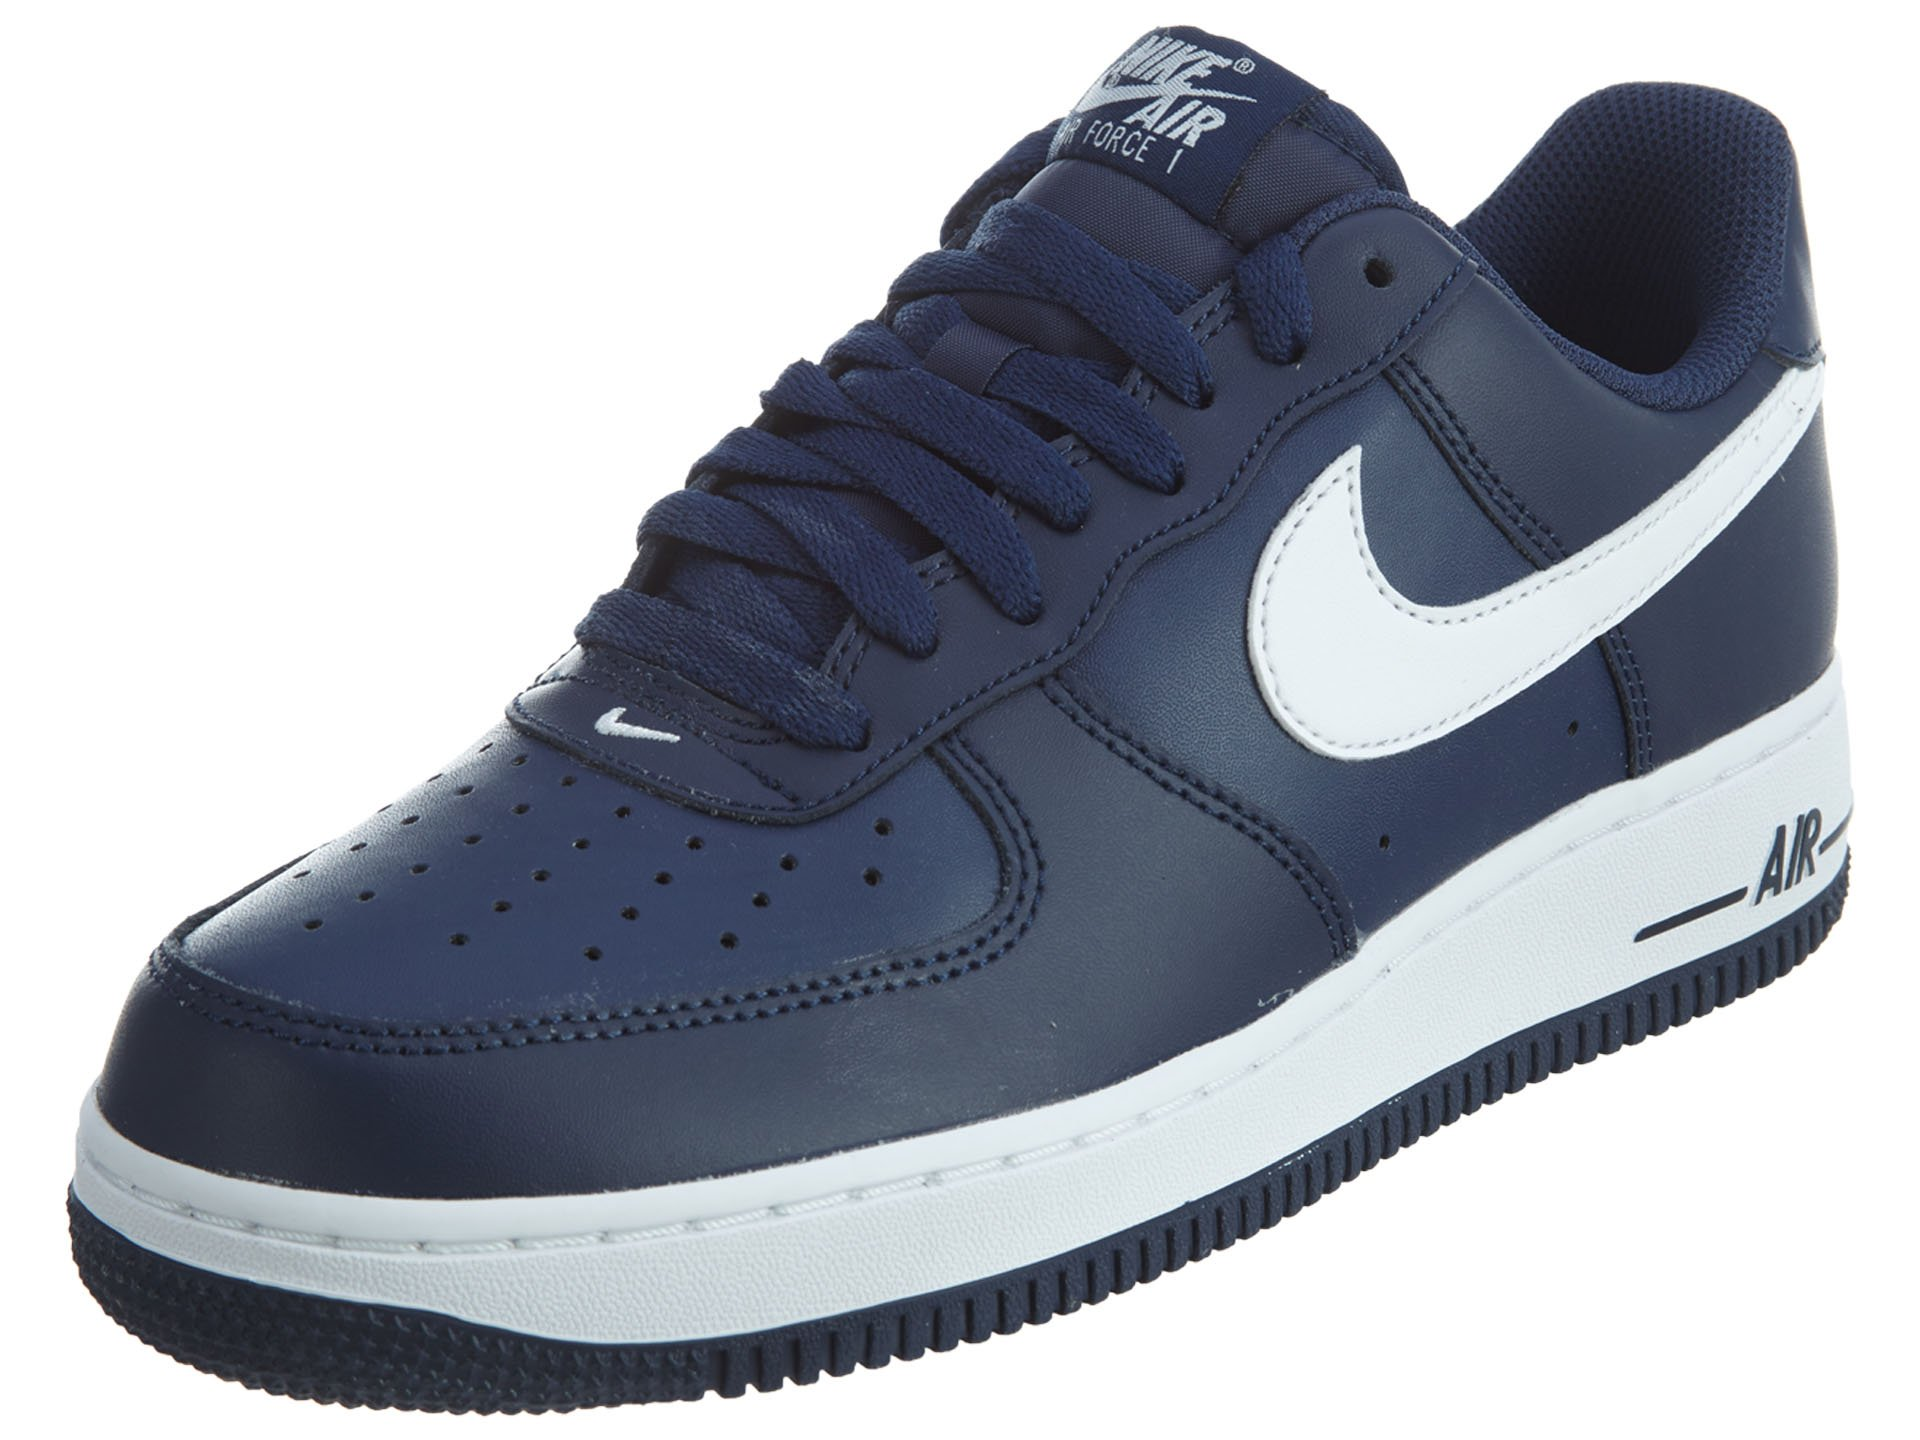 Nike Men's Air Force 1, MIDNIGHT NAVY/WHITE-MID NAVY, 14 M US